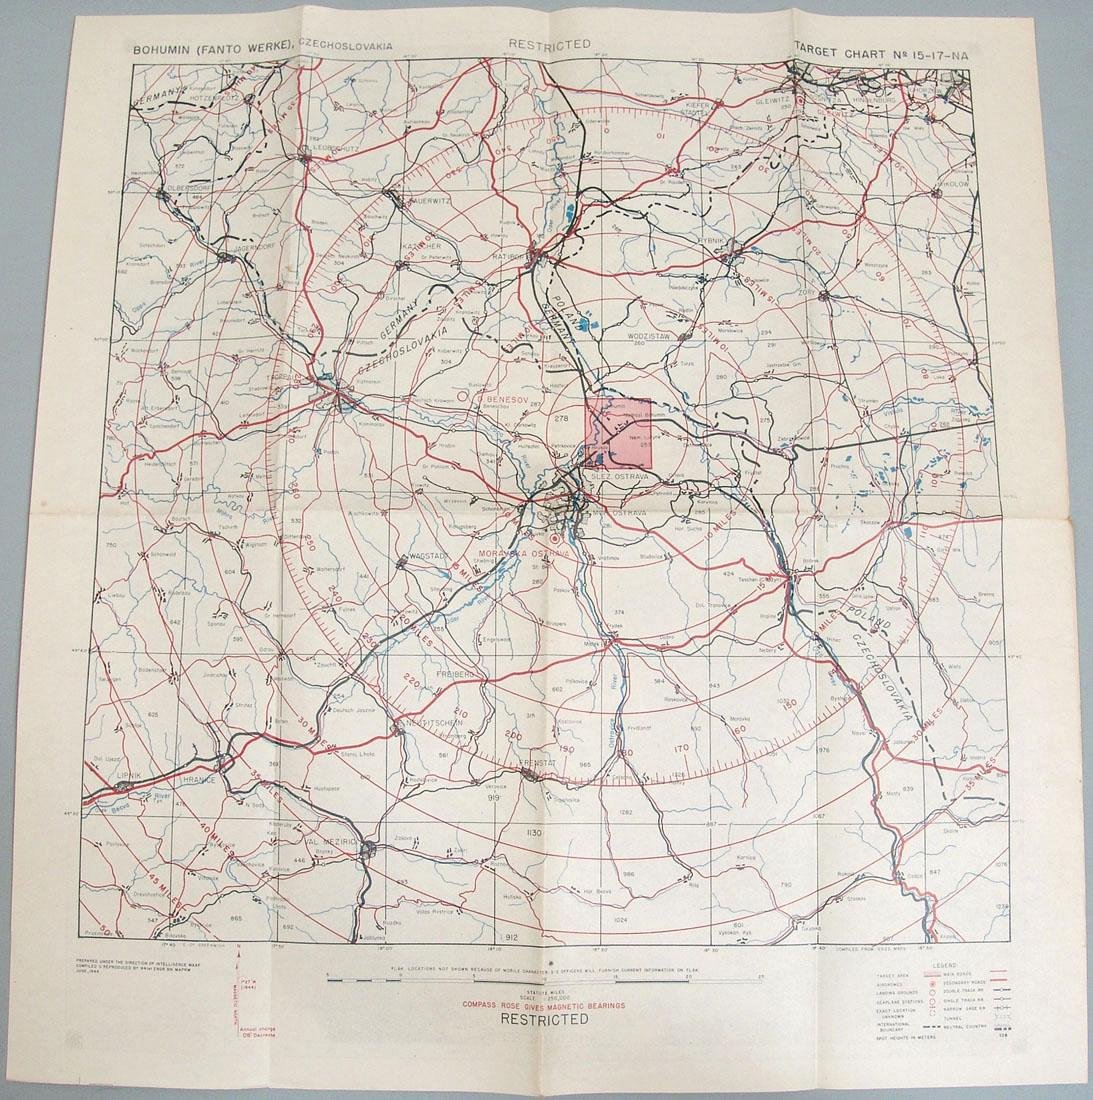 1944 WWII USAAF Europe Bombing Map - Czechoslovakia